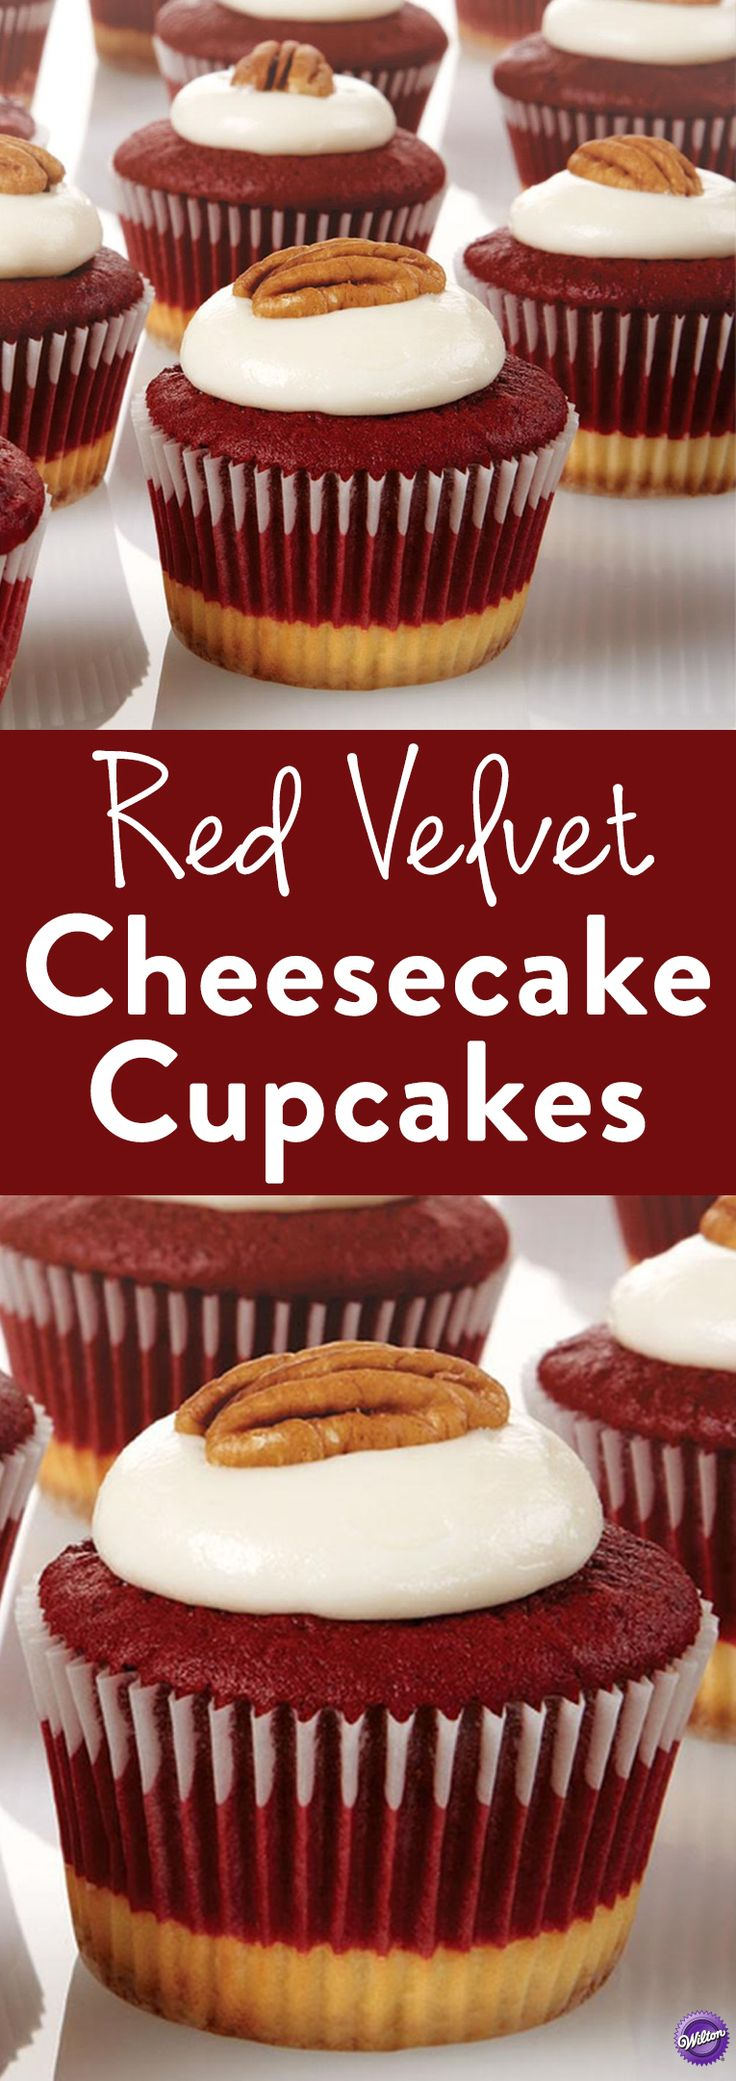 How to Make Red Velvet Cheesecake Cupcakes - Red Velvet Cheesecake Cupcakes - Here we have America's two favorite desserts combined into one cupcake! Creamy cheesecake and red velvet cake are the perfect combinations of sweetness. They make a great dessert treat for any gathering or celebration!